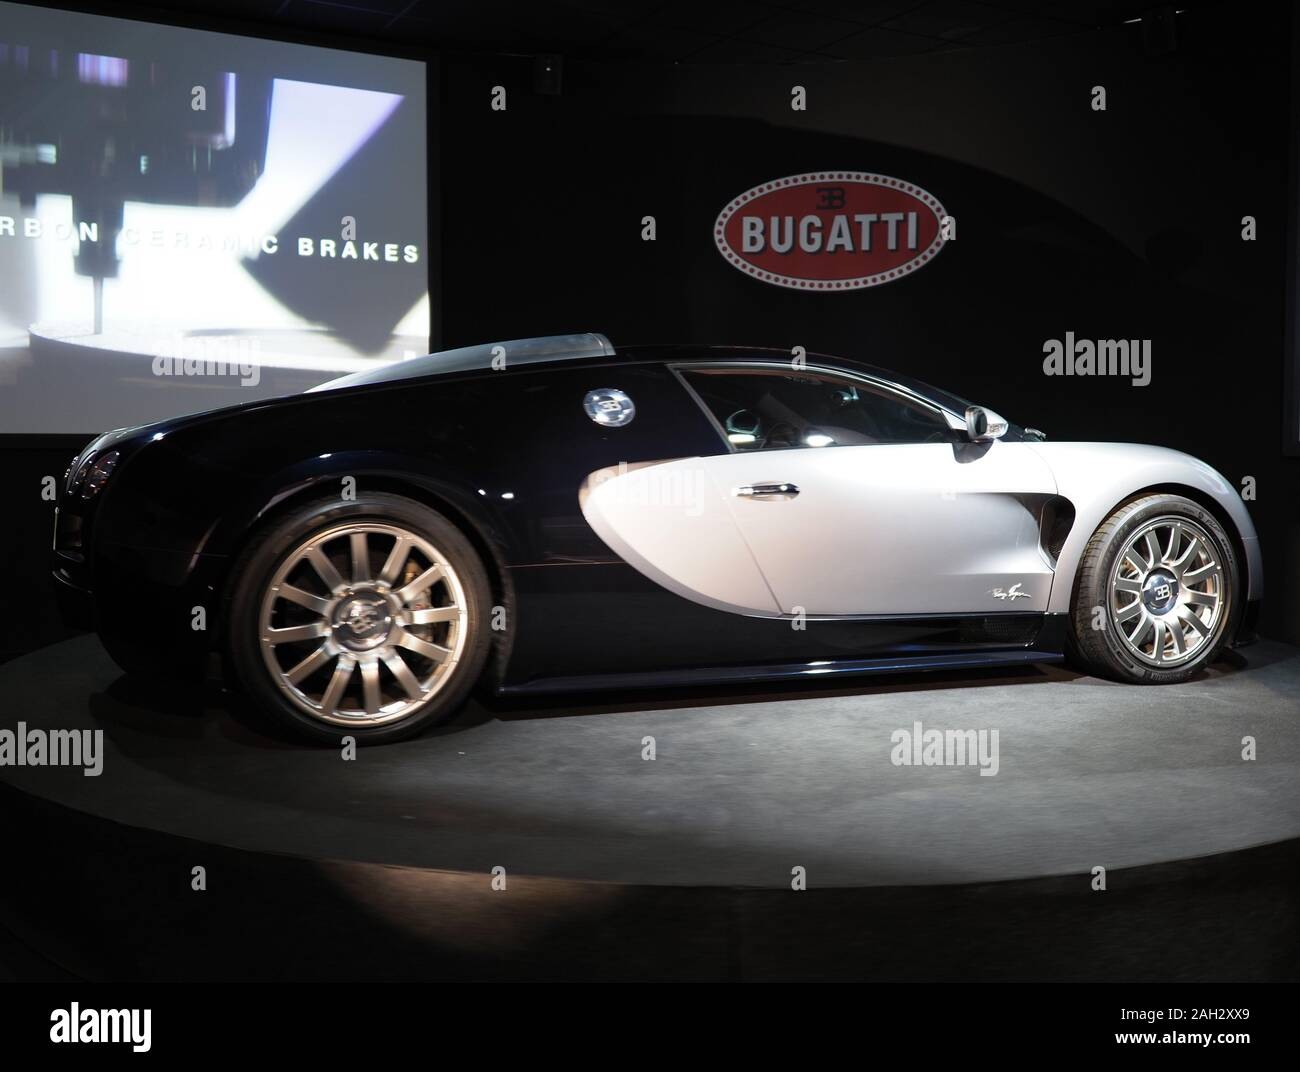 Bugatti Model Car High Resolution Stock Photography And Images Alamy